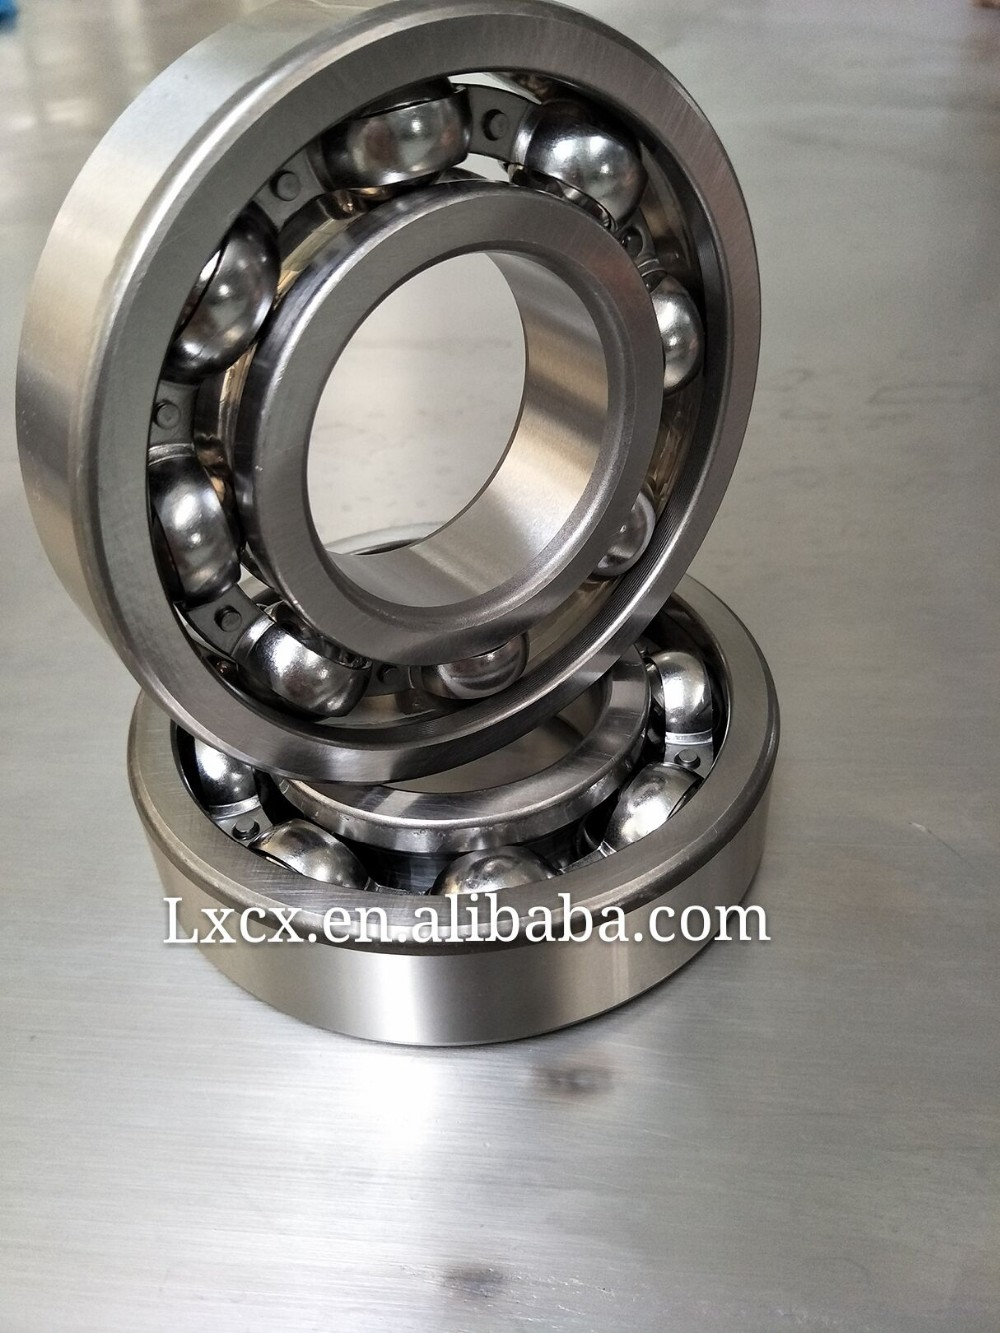 Quality bearing Low price deep groove ball bearing 6420(100*250*58mm)OPEN Manufacture factory